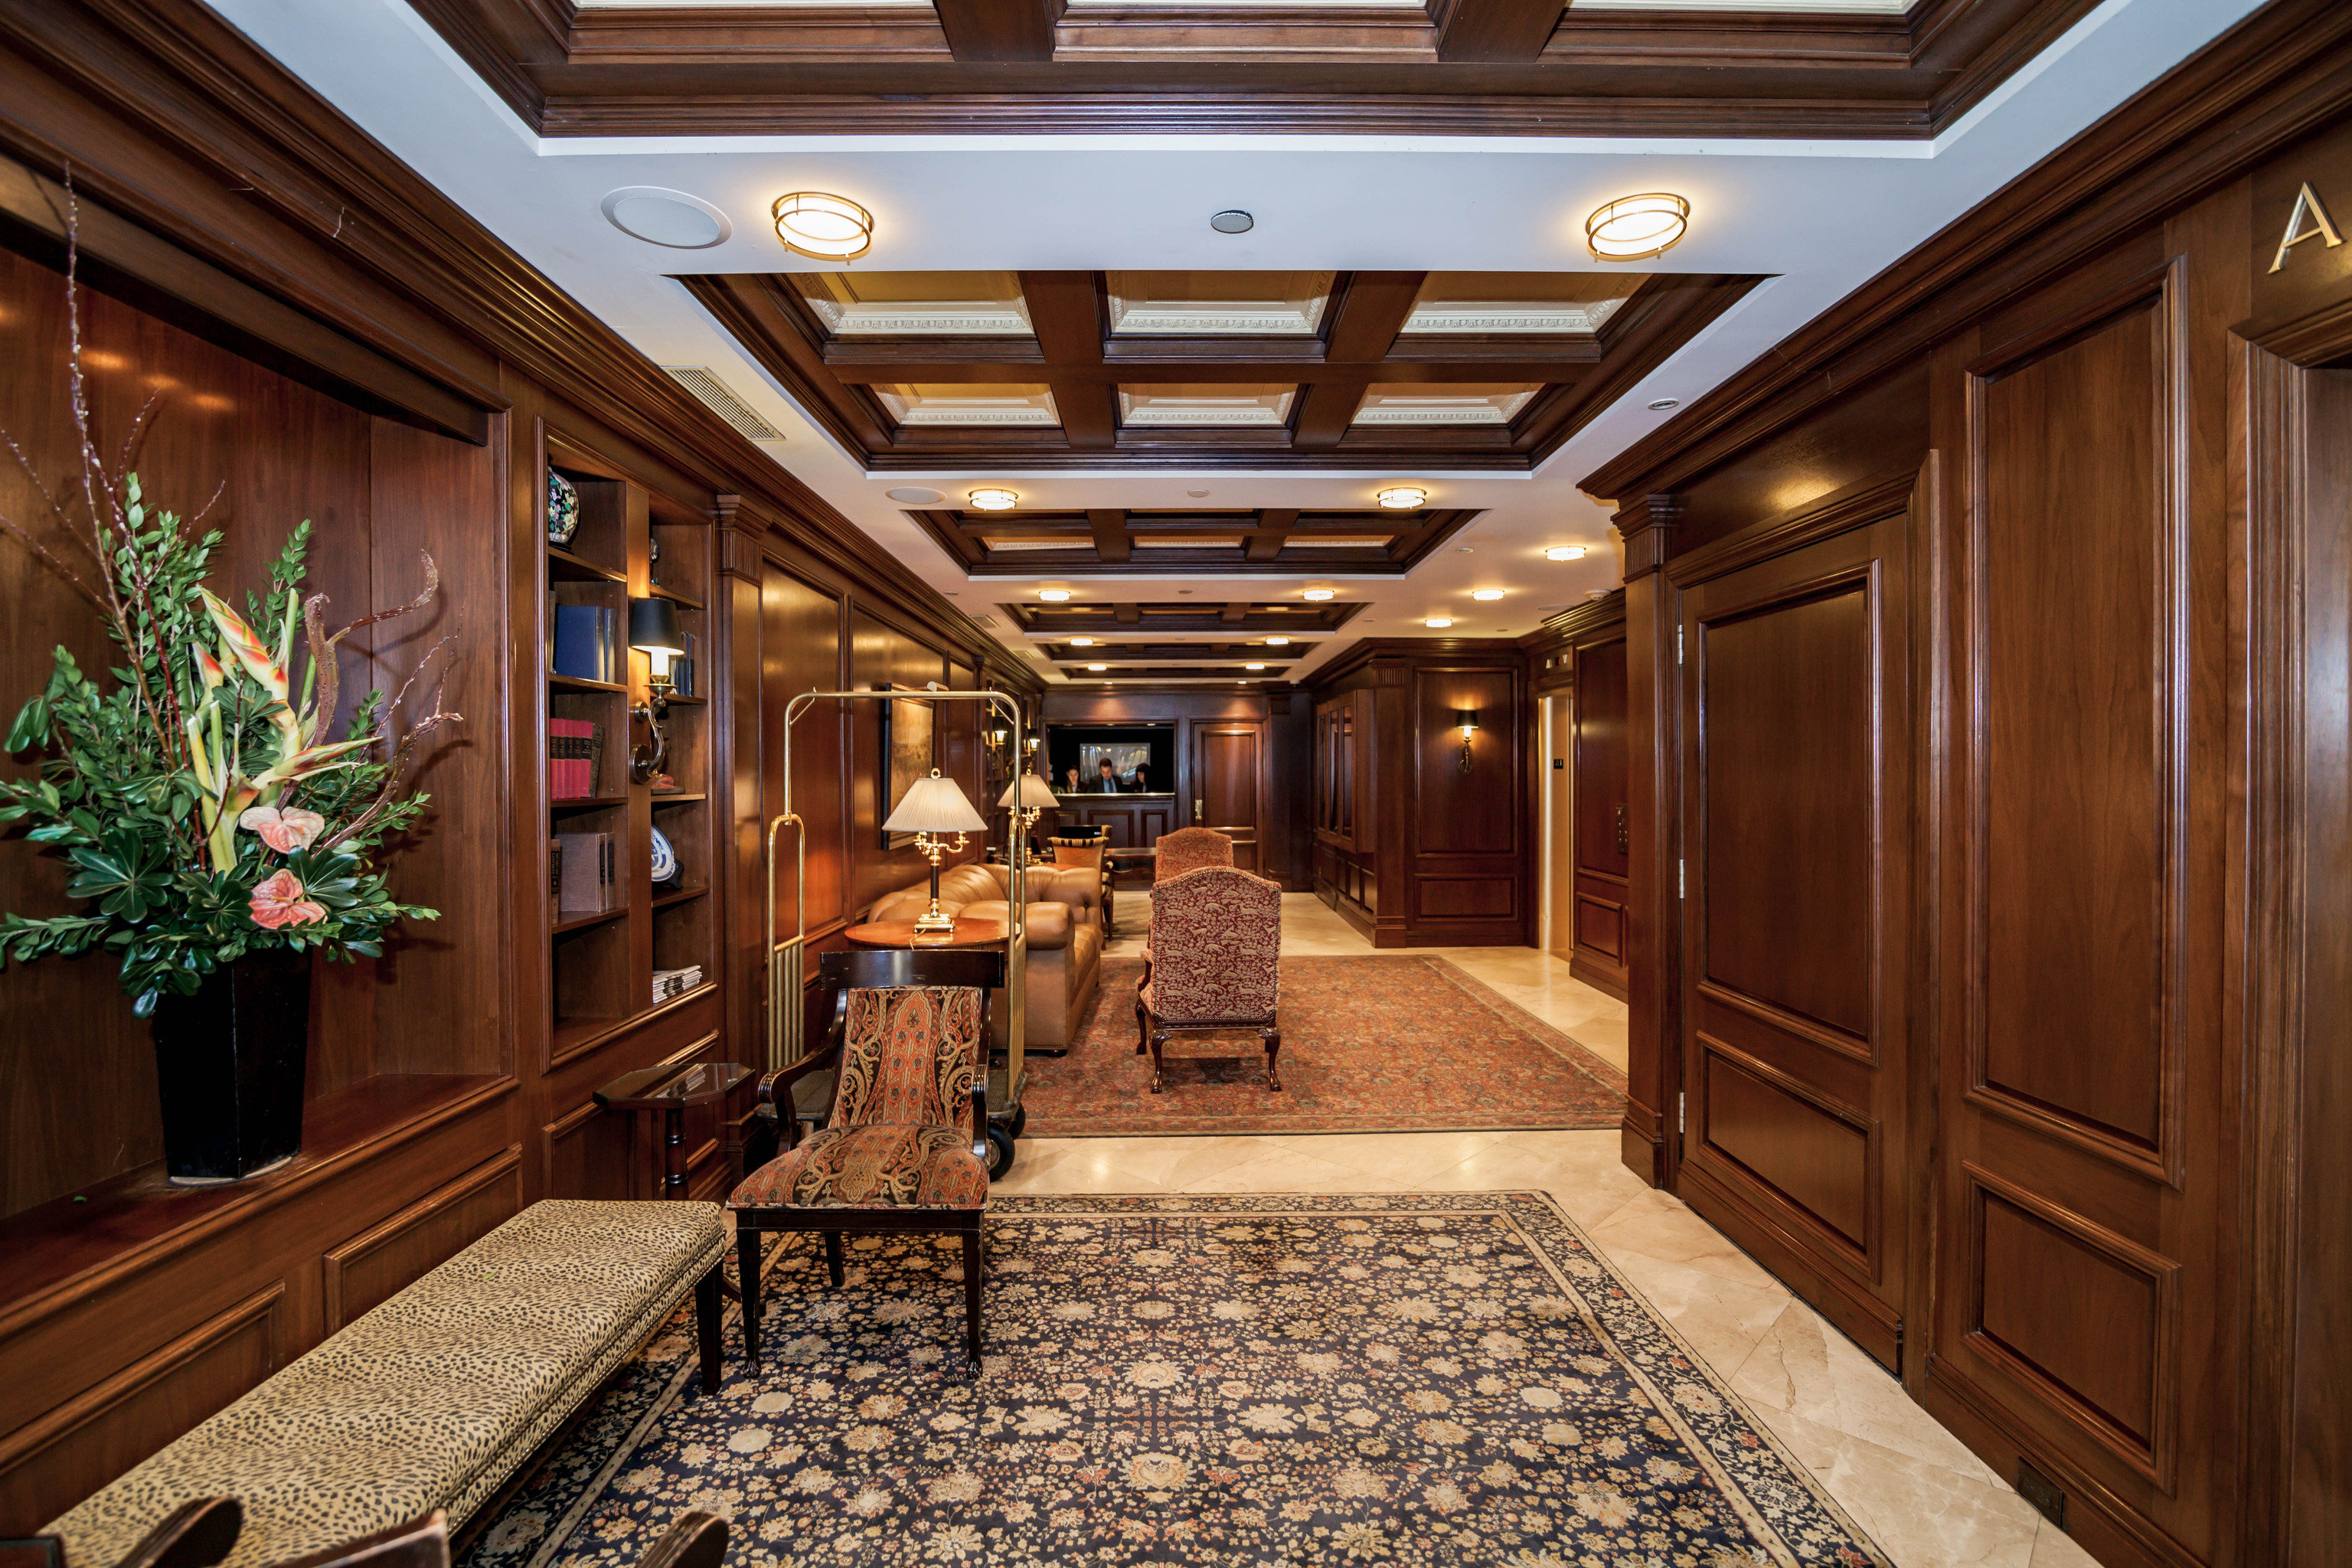 property building home Lobby mansion living room cabinetry stone